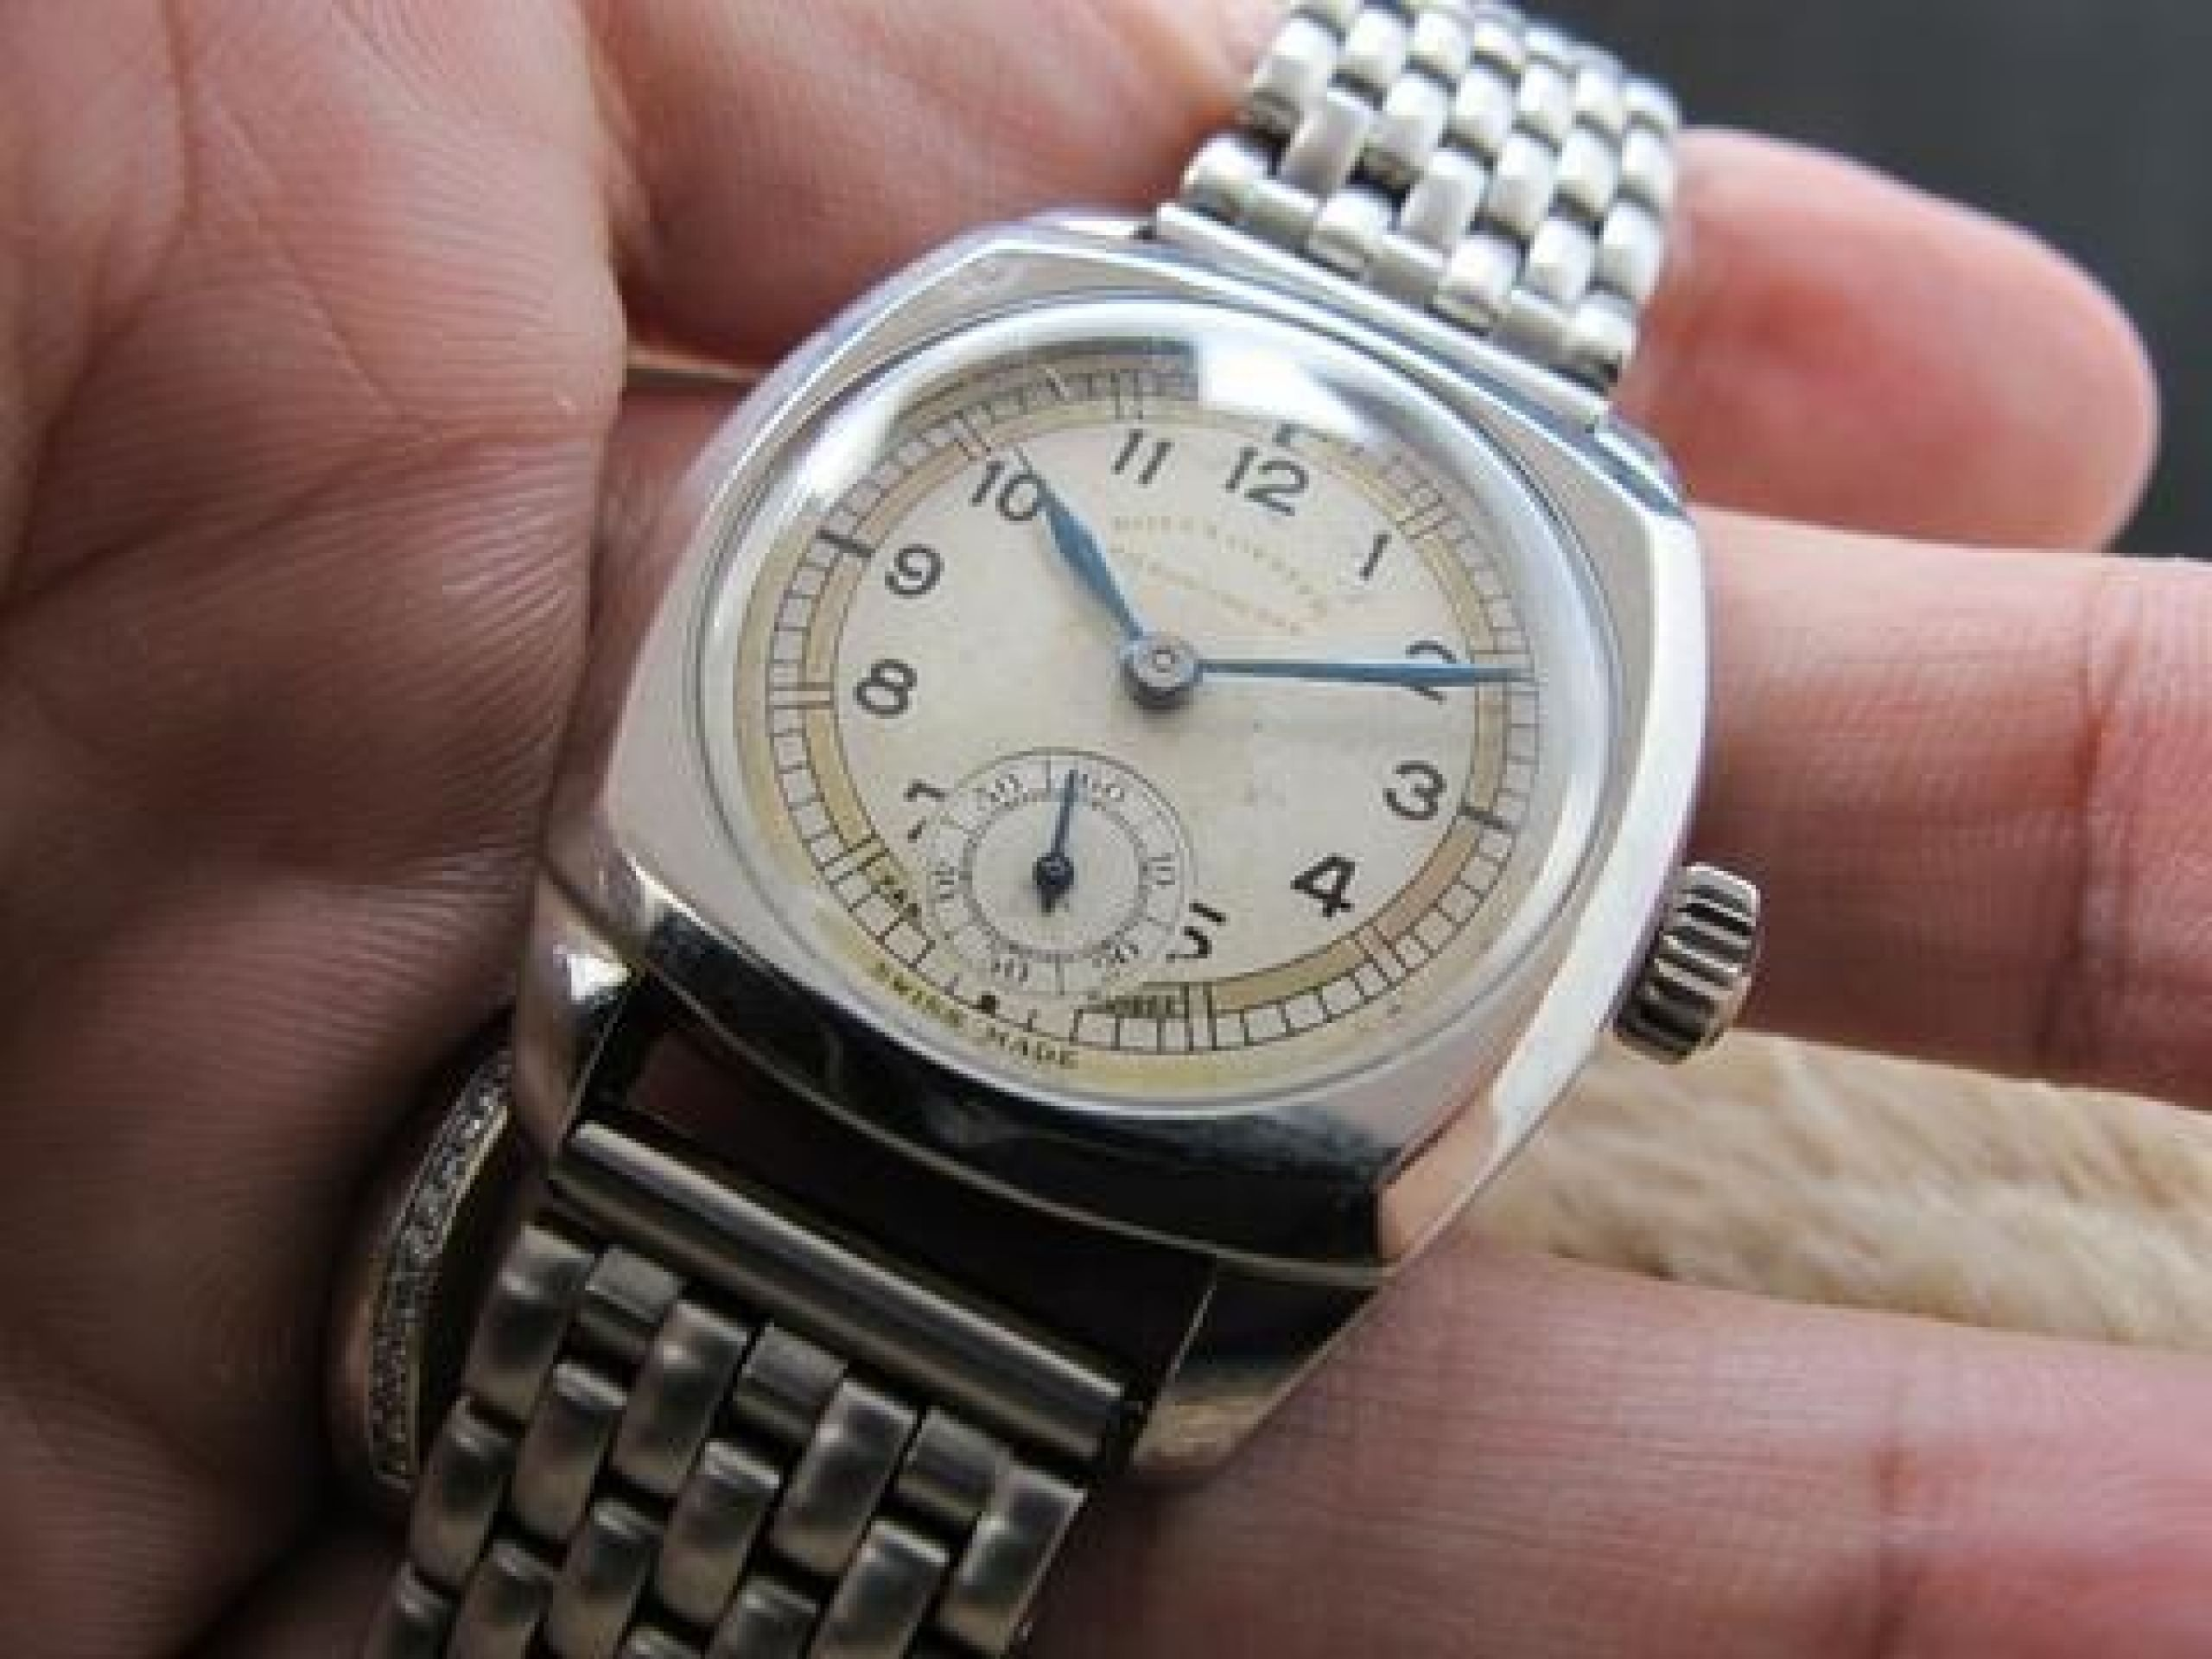 1940 ROLEX OYSTER MILITARY 3139 WITH CHAPTER RING DIAL AND SUB-SECONDS